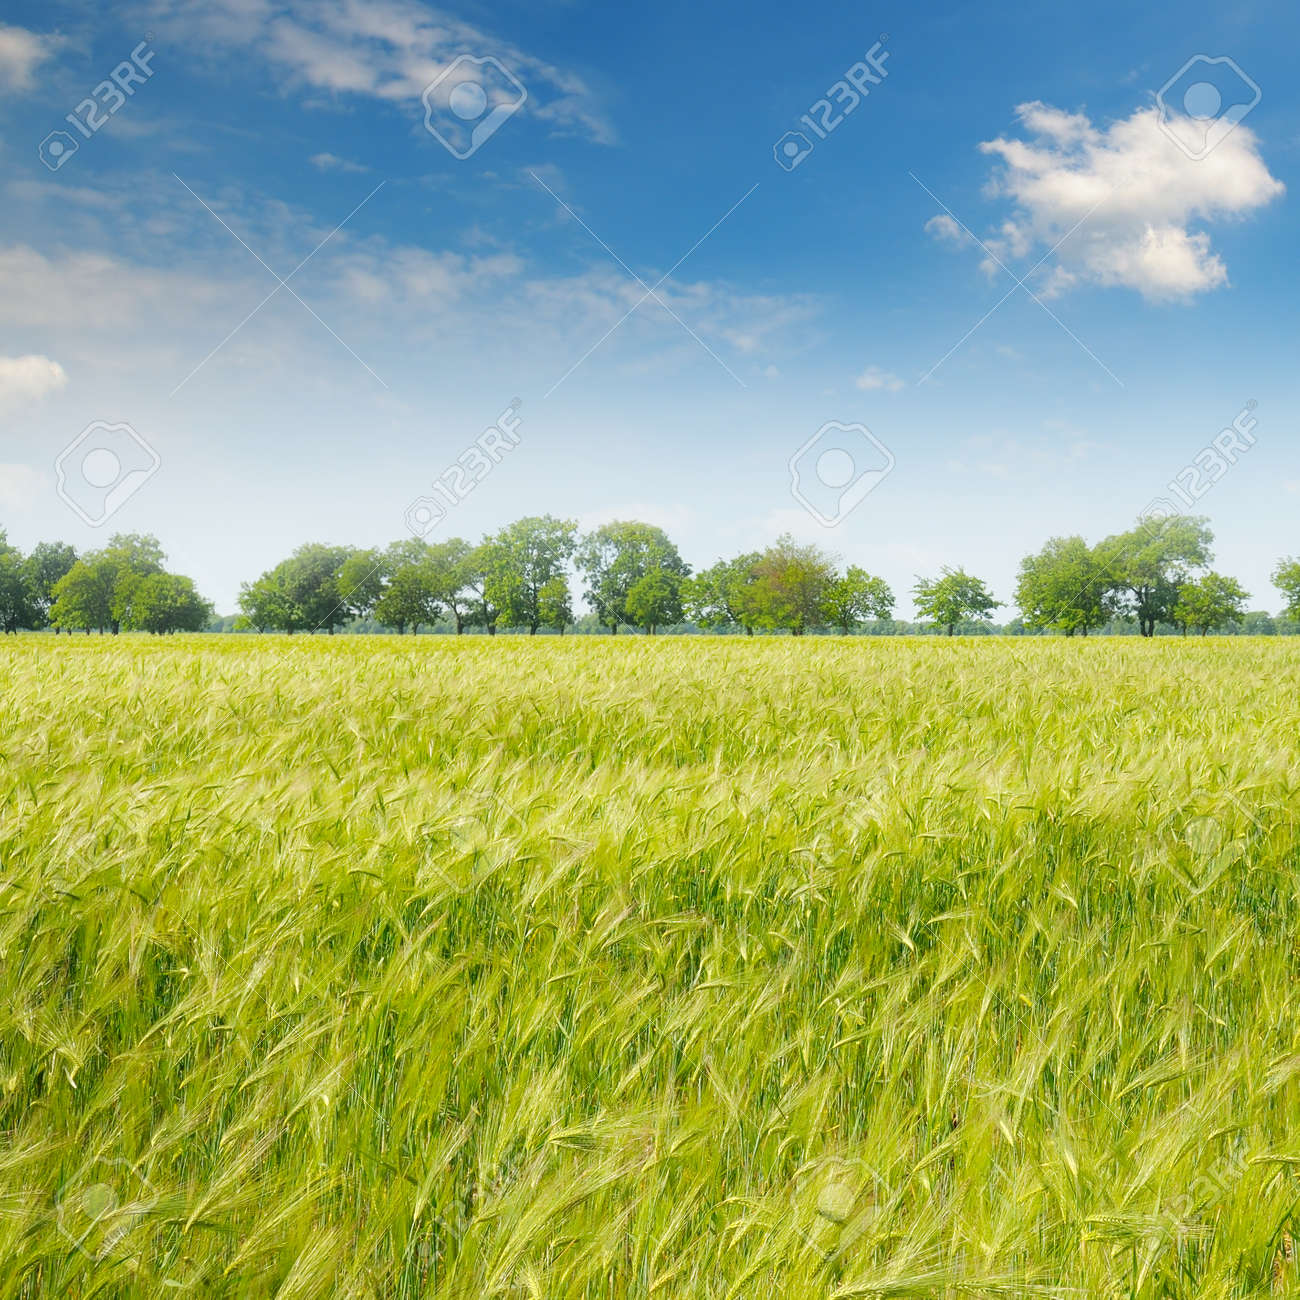 green field and blue sky with light clouds - 49591341